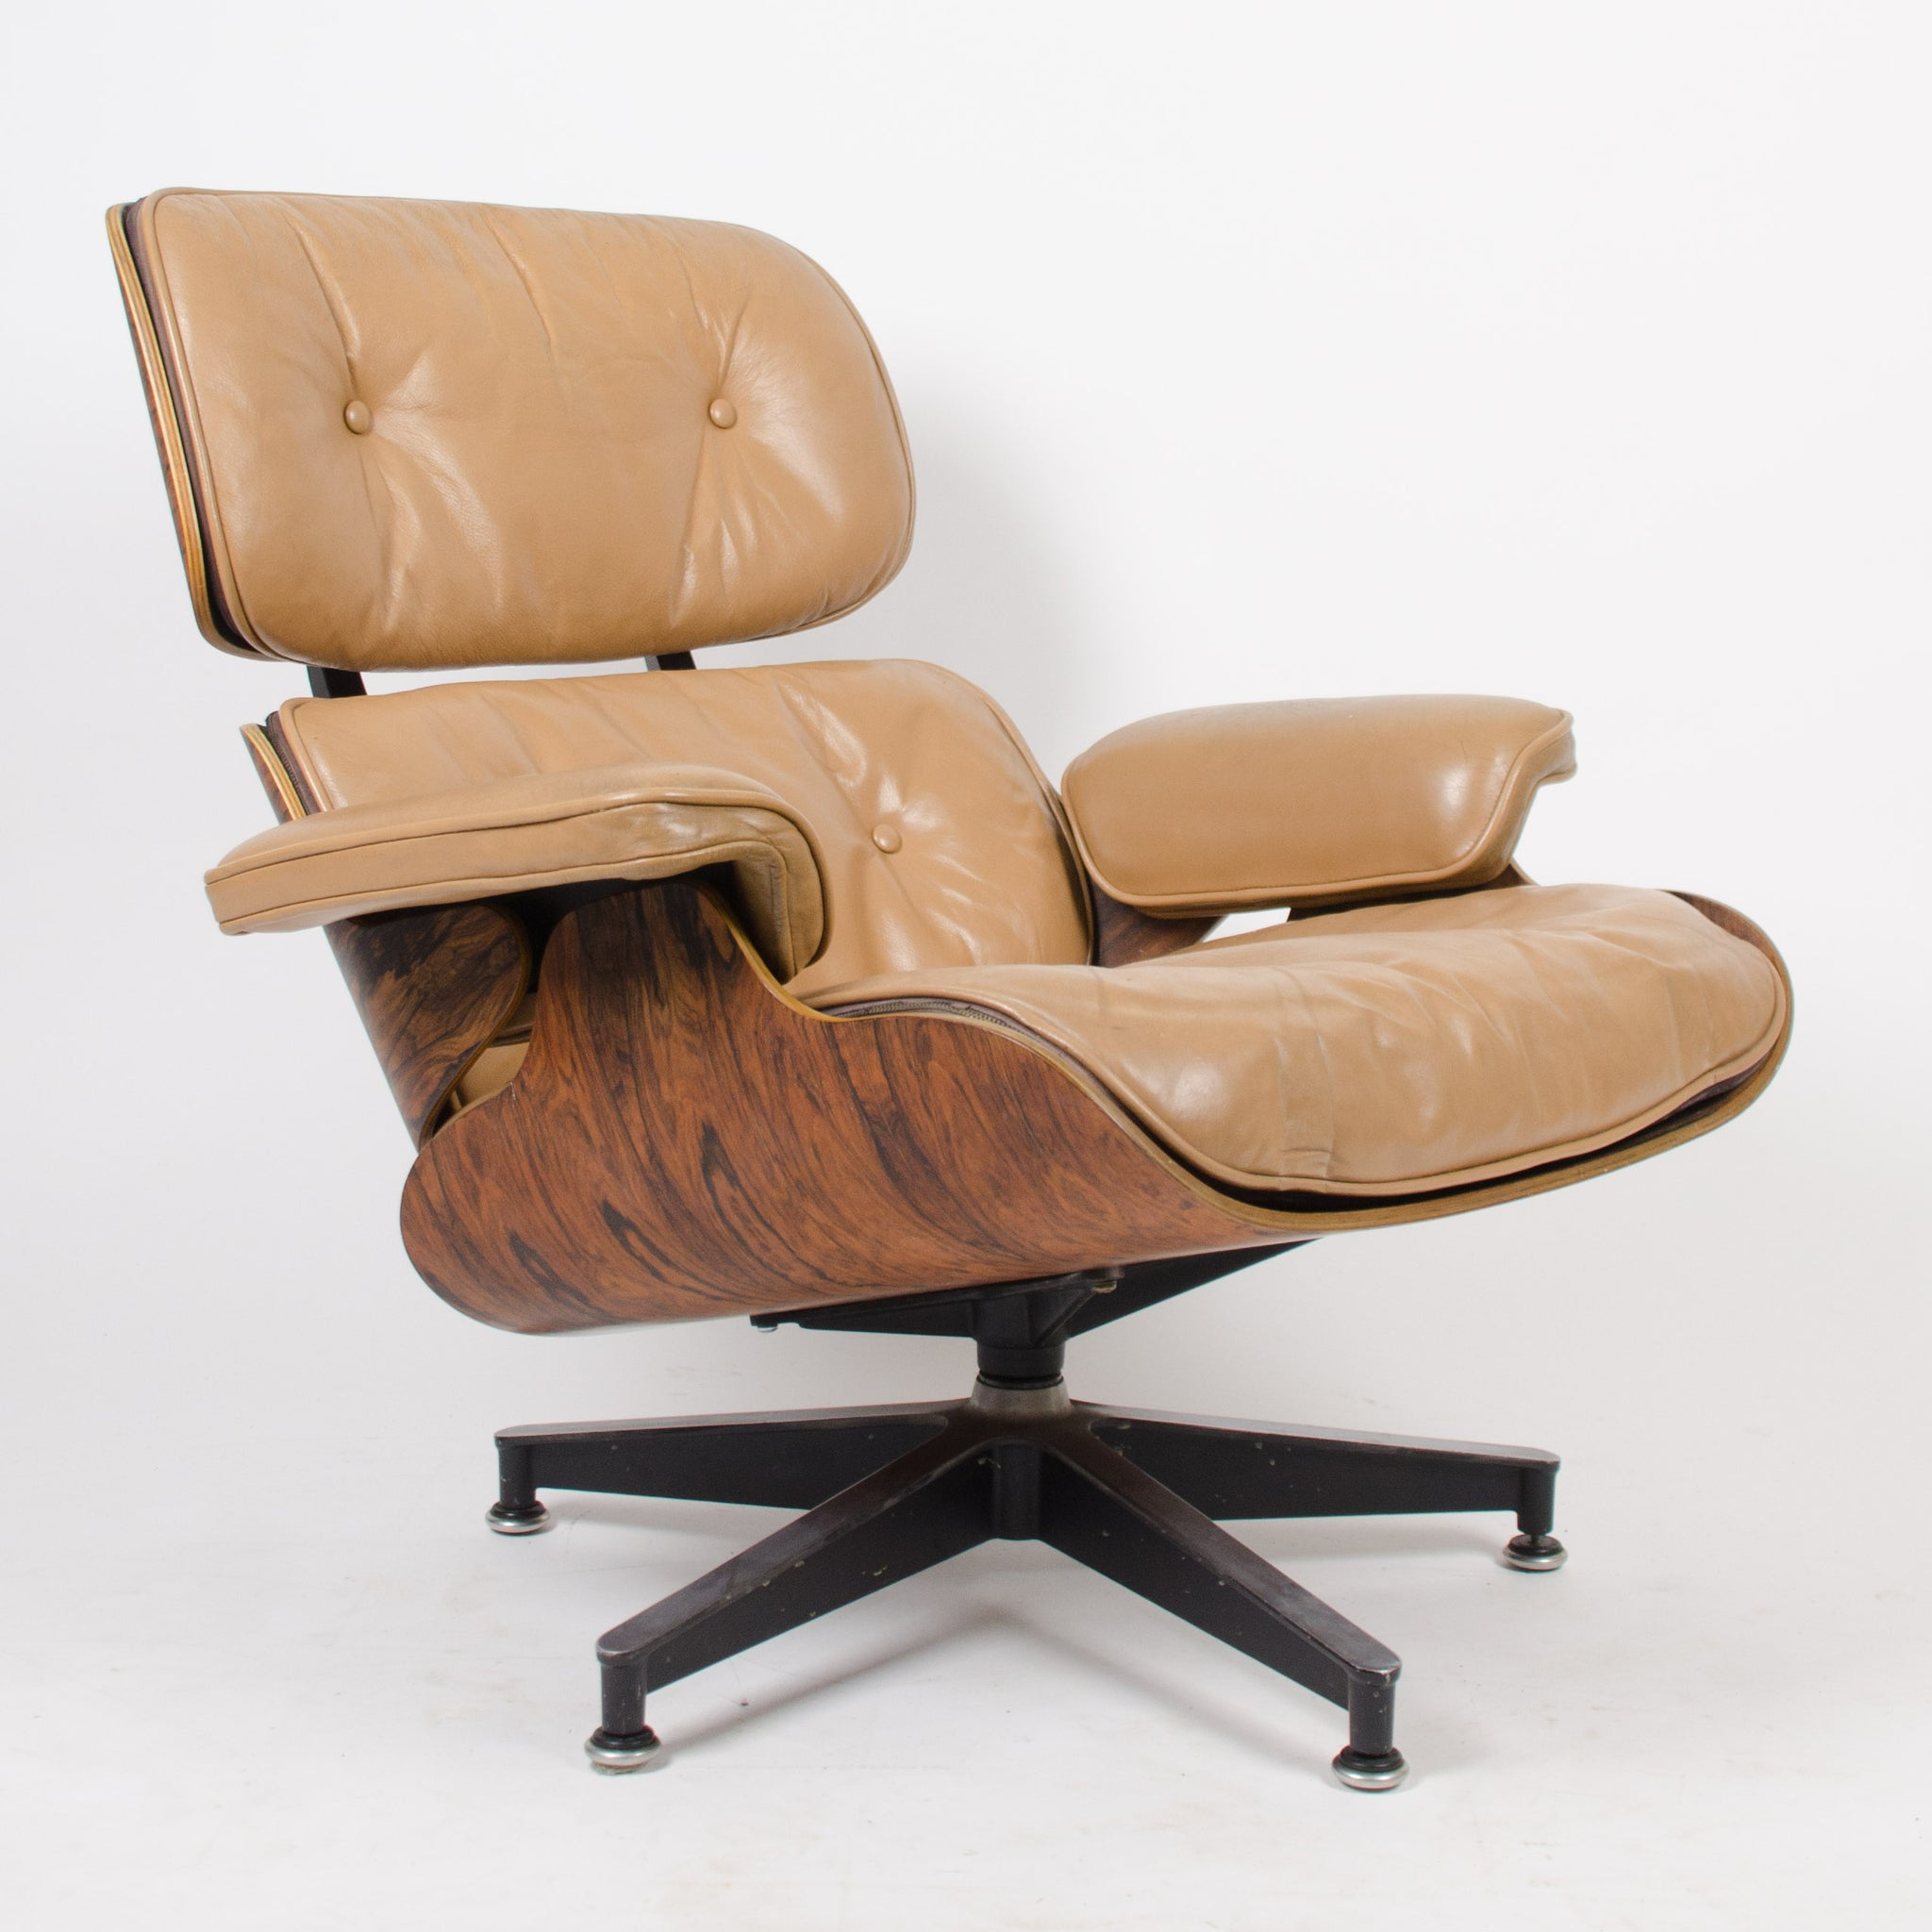 SOLD 1960's Herman Miller Eames Lounge Chair & Ottoman Rosewood 670 671 Tan Leather